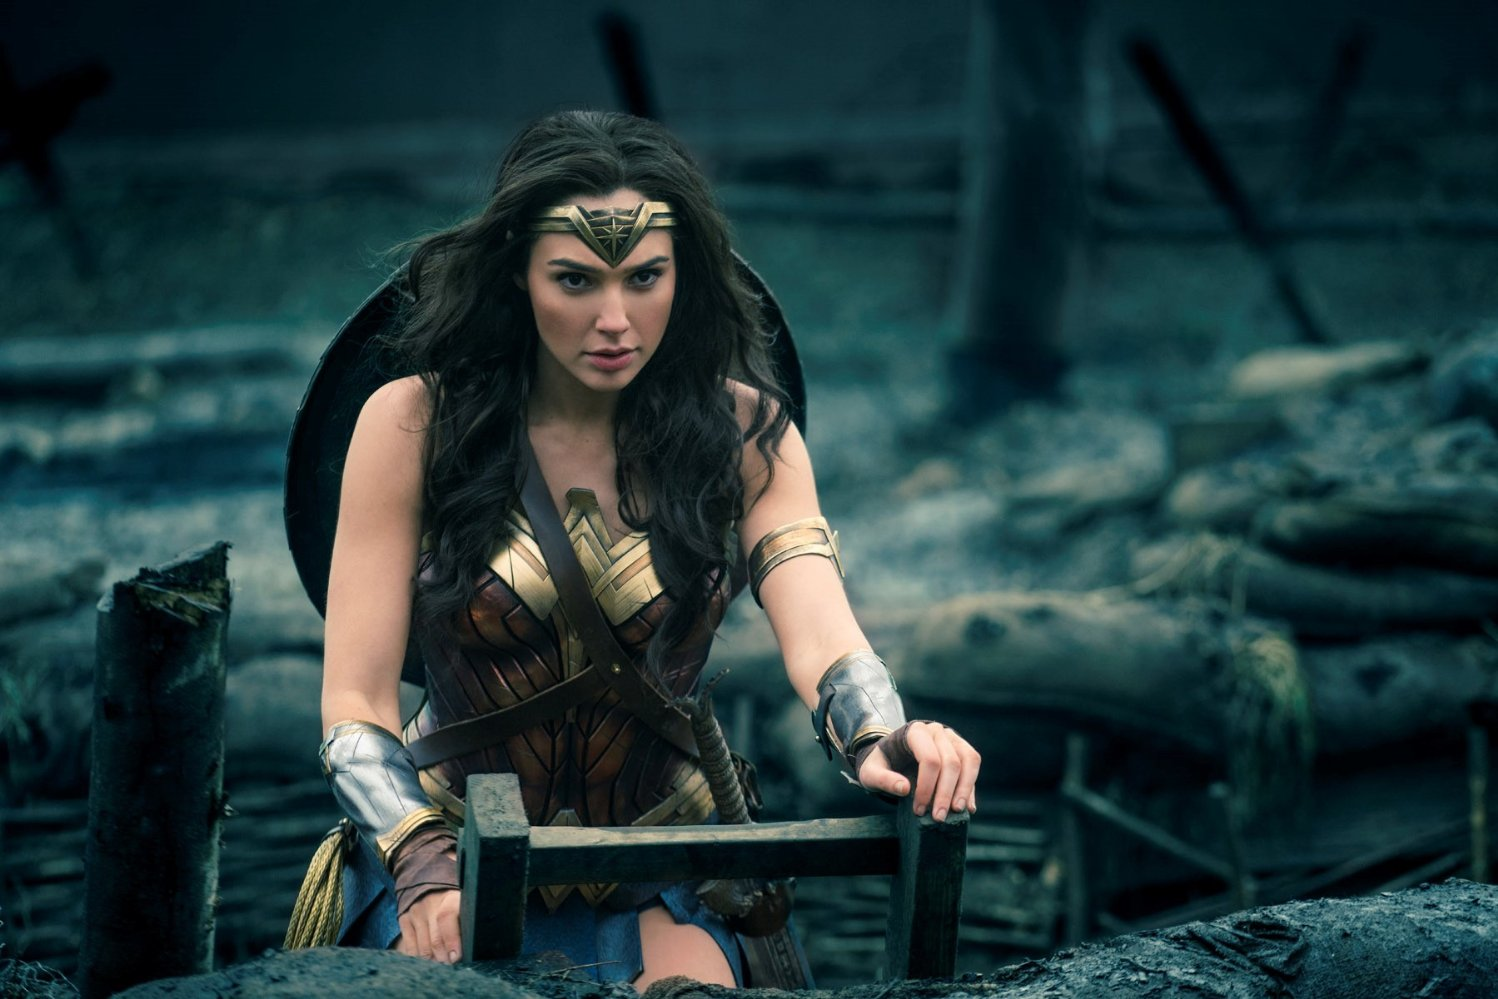 Diana+%28Gadot%29+enters+No+Man%27s+Land+in+%22Wonder+Woman.%22+The+film+was+released+on+June+2.